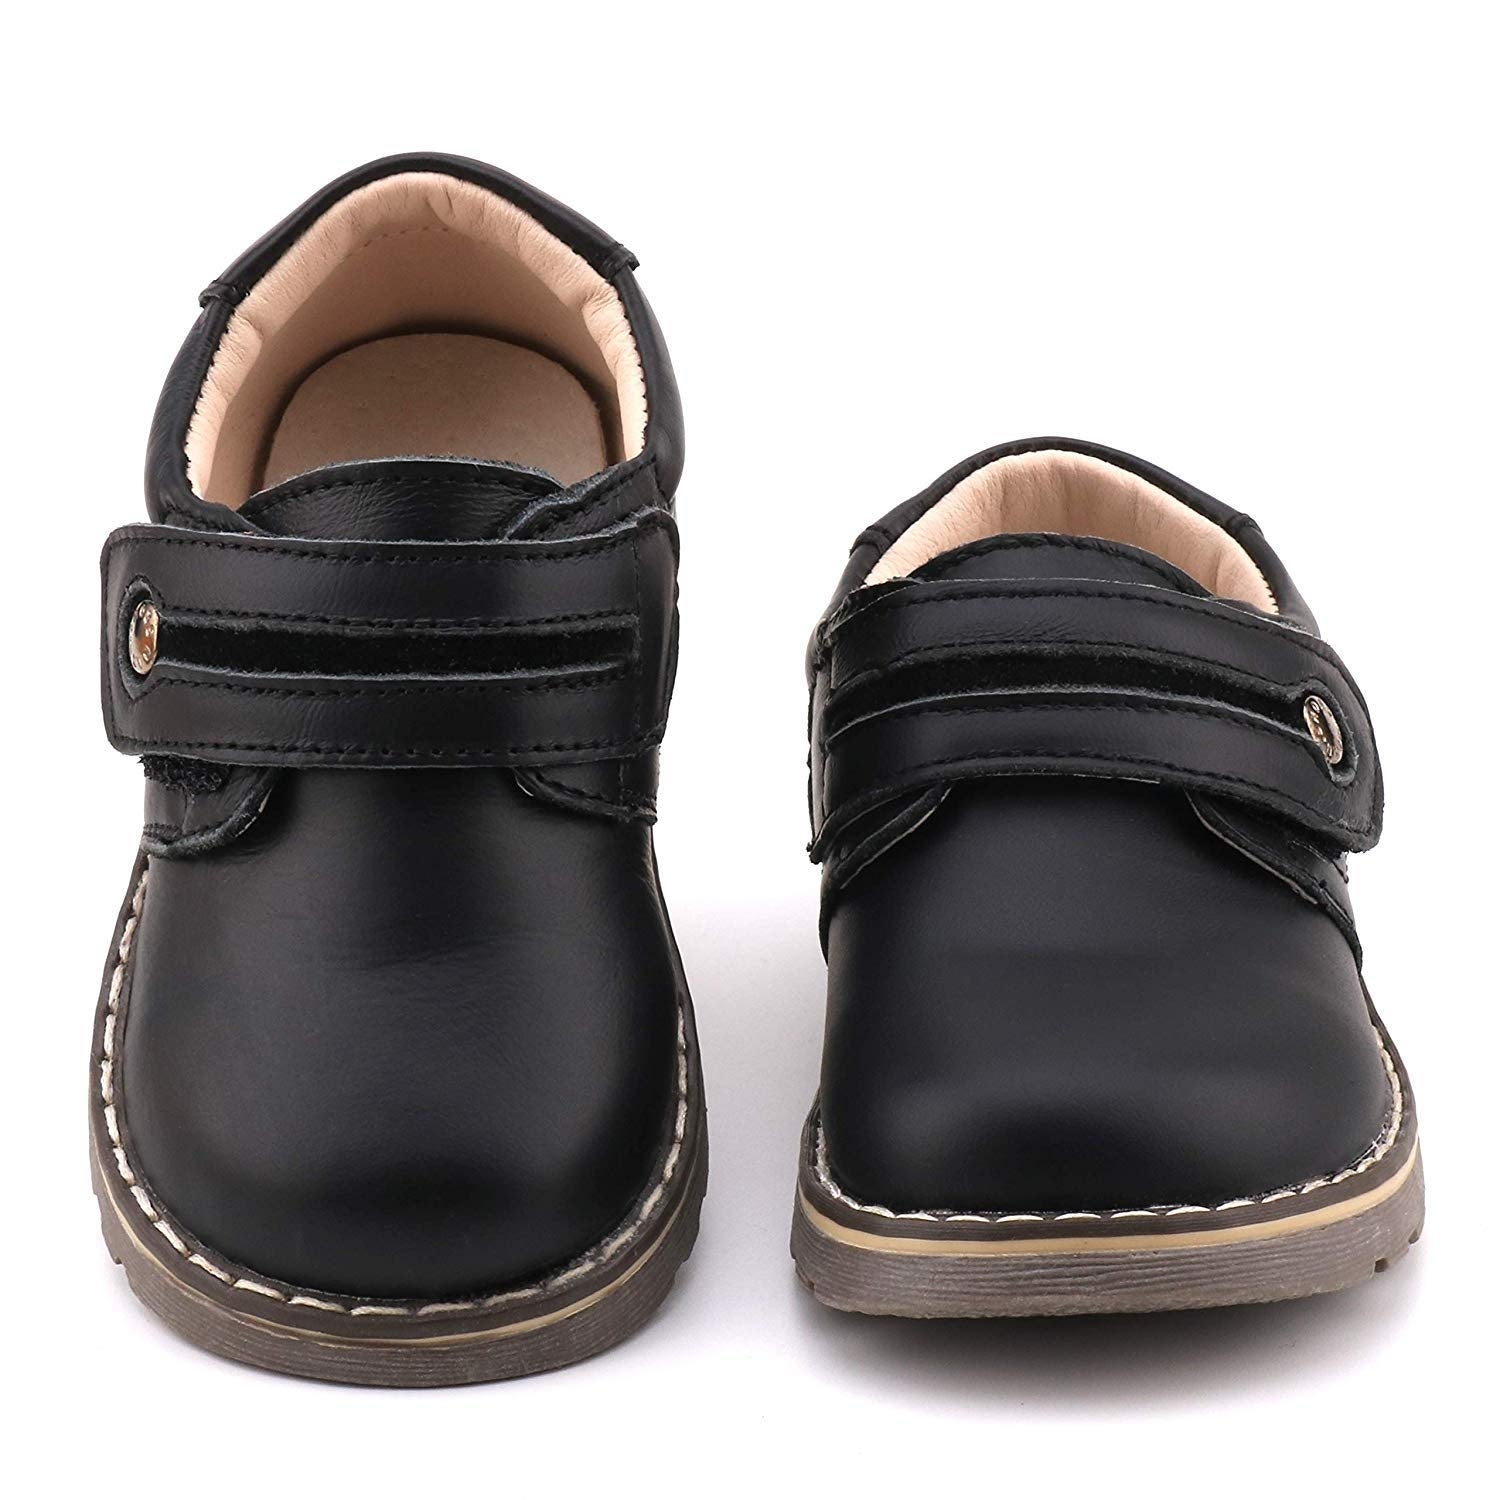 Femizee Casual Toddler//Little Boys Synthetic Leather Loafer Shoes Oxfords